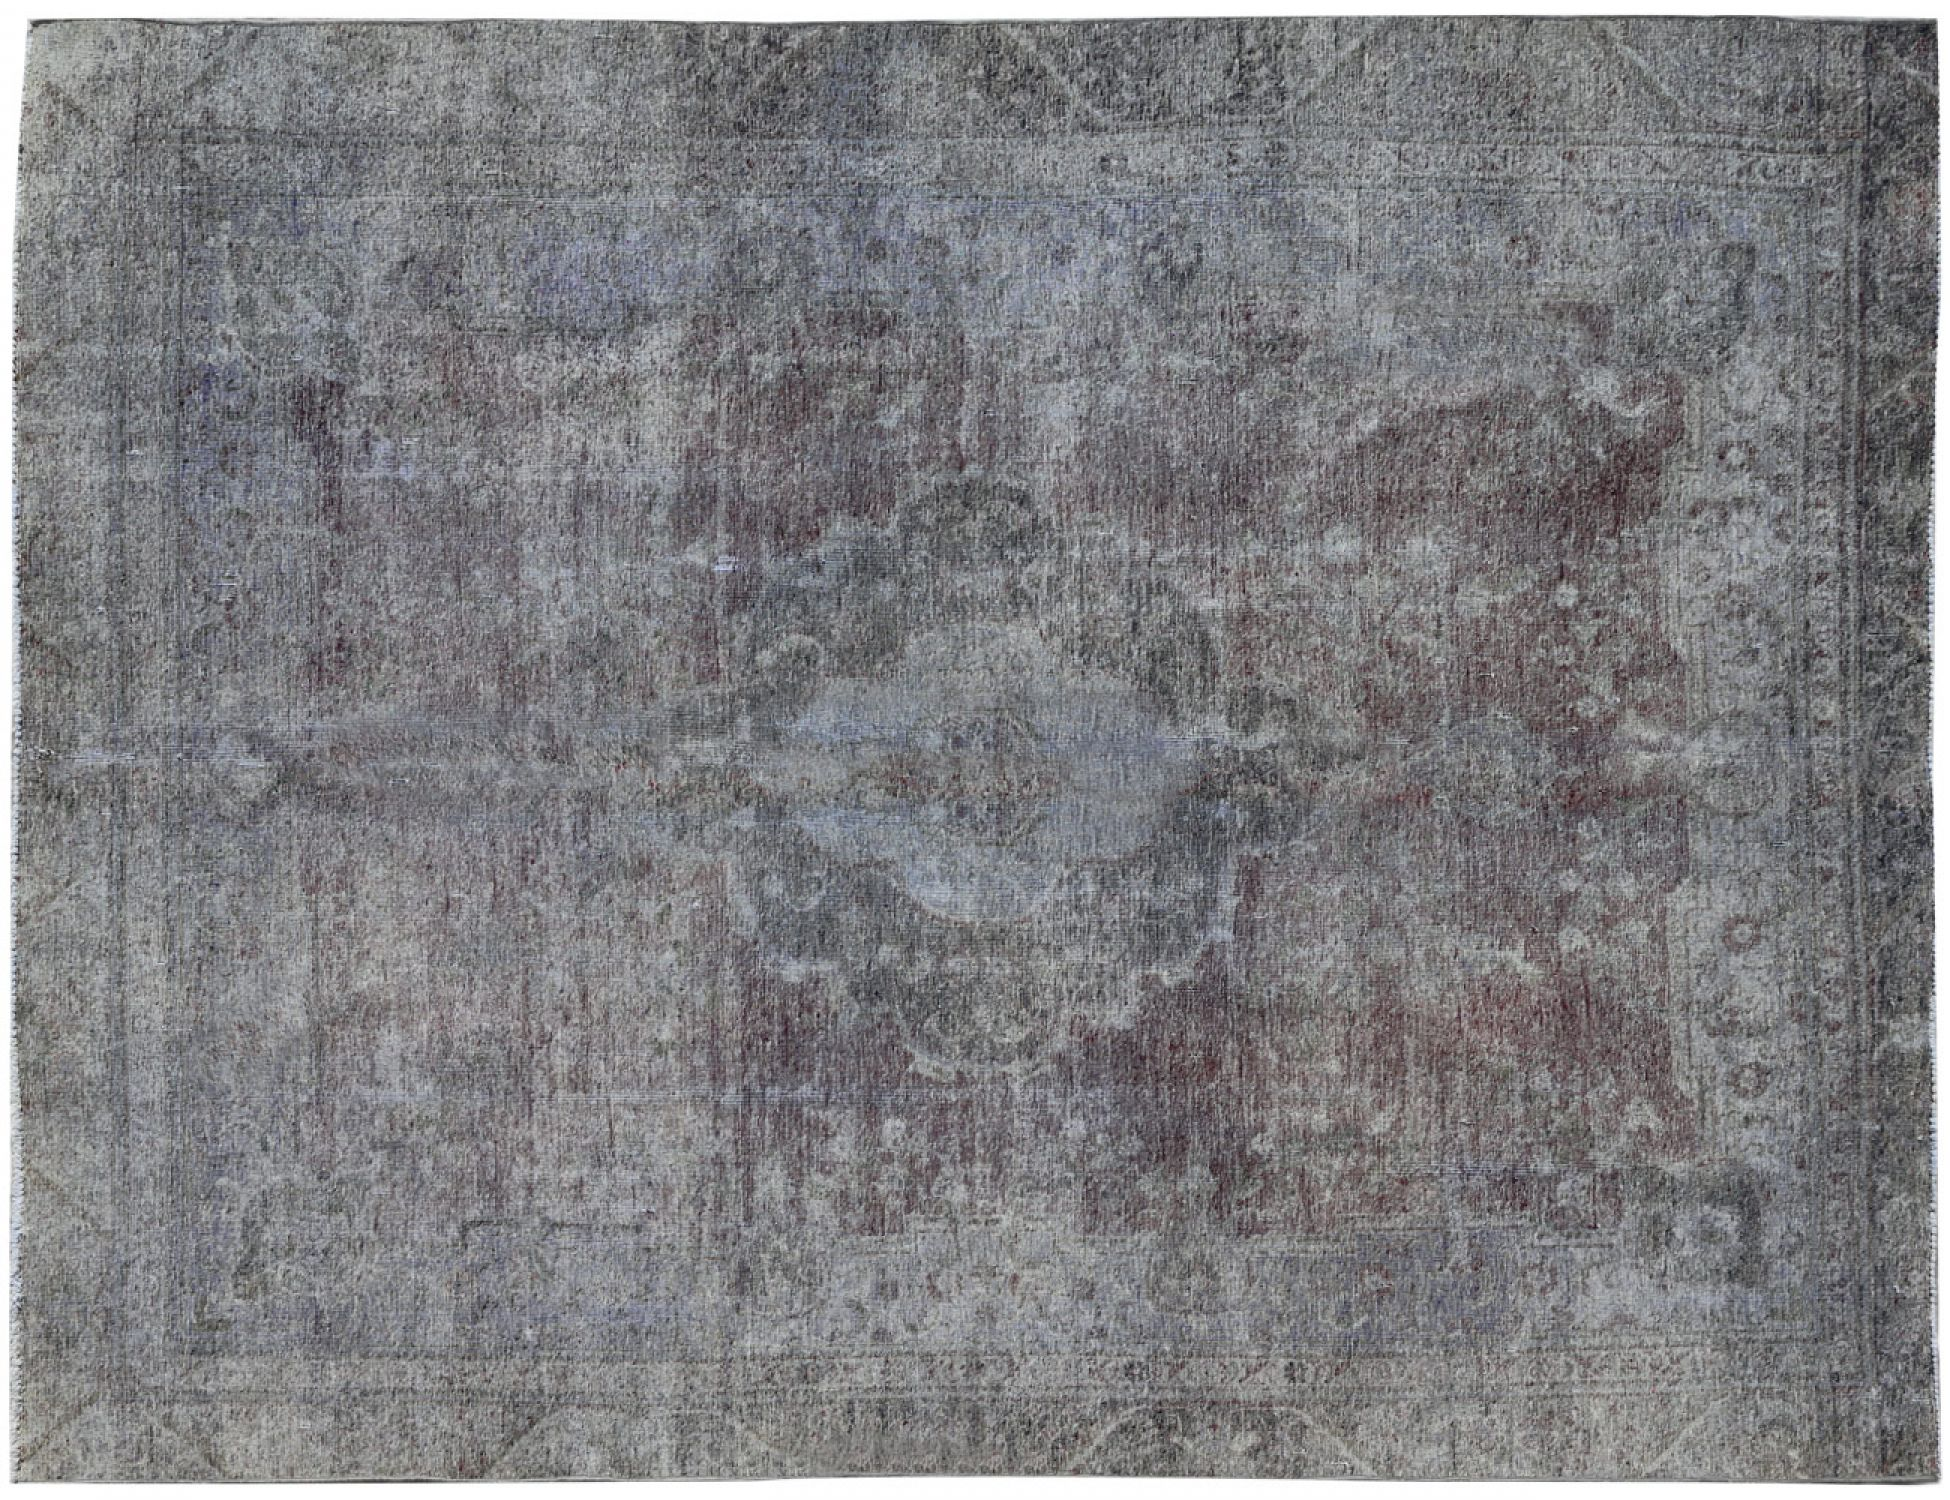 Vintage Carpet  grey <br/>342 x 260 cm